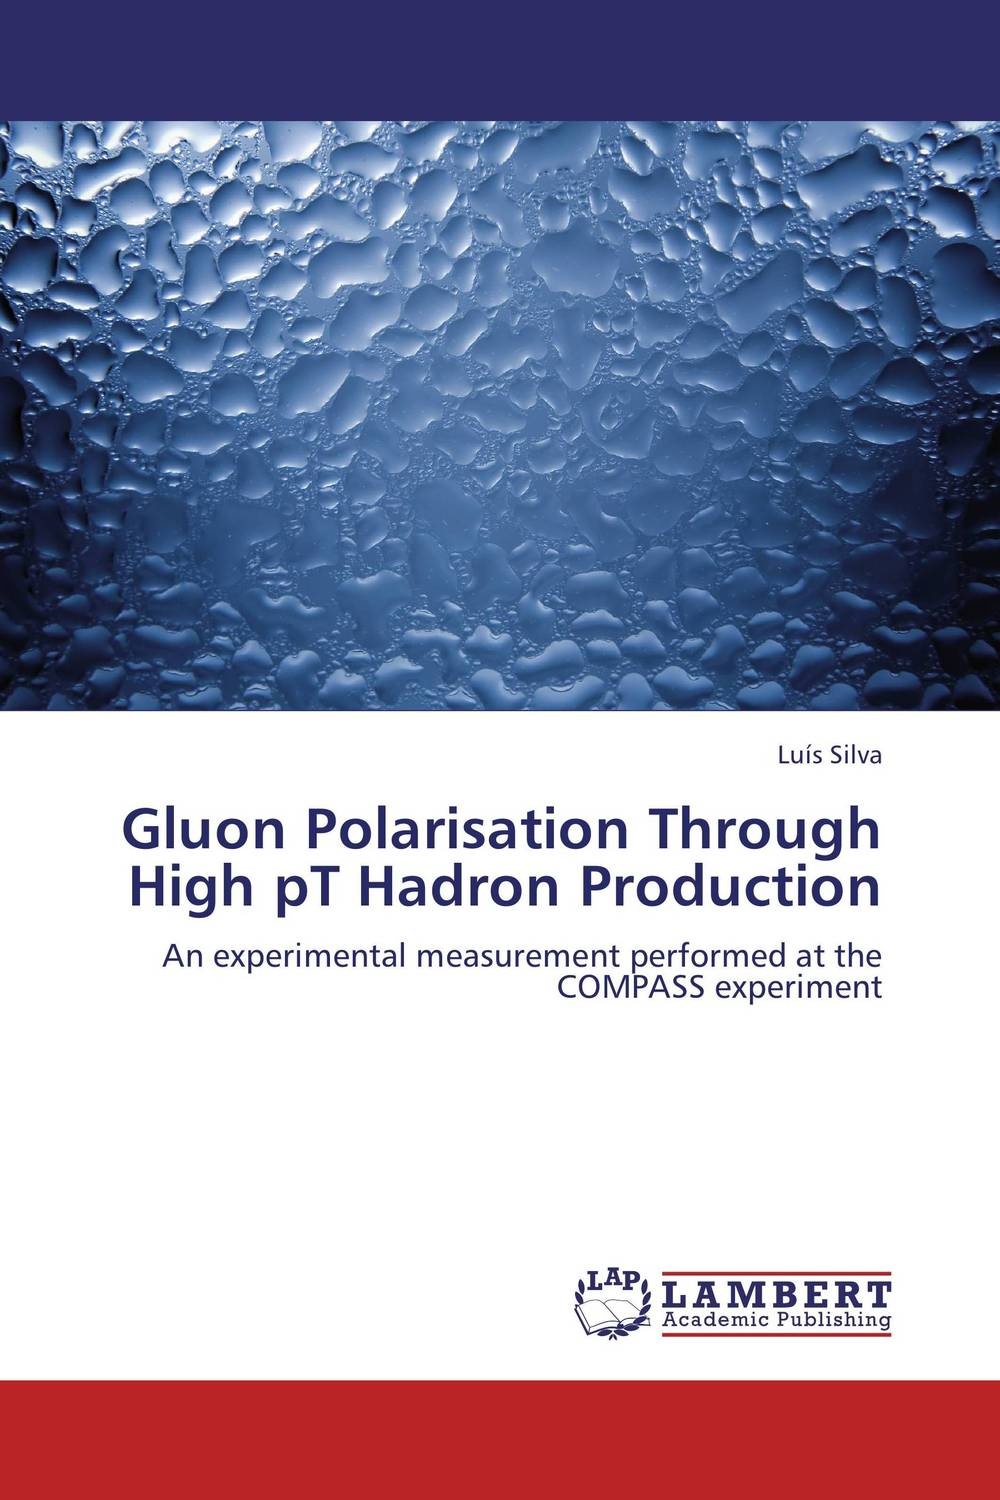 Gluon Polarisation Through High pT Hadron Production momentum часы momentum 1m sp17ps0 коллекция heatwave